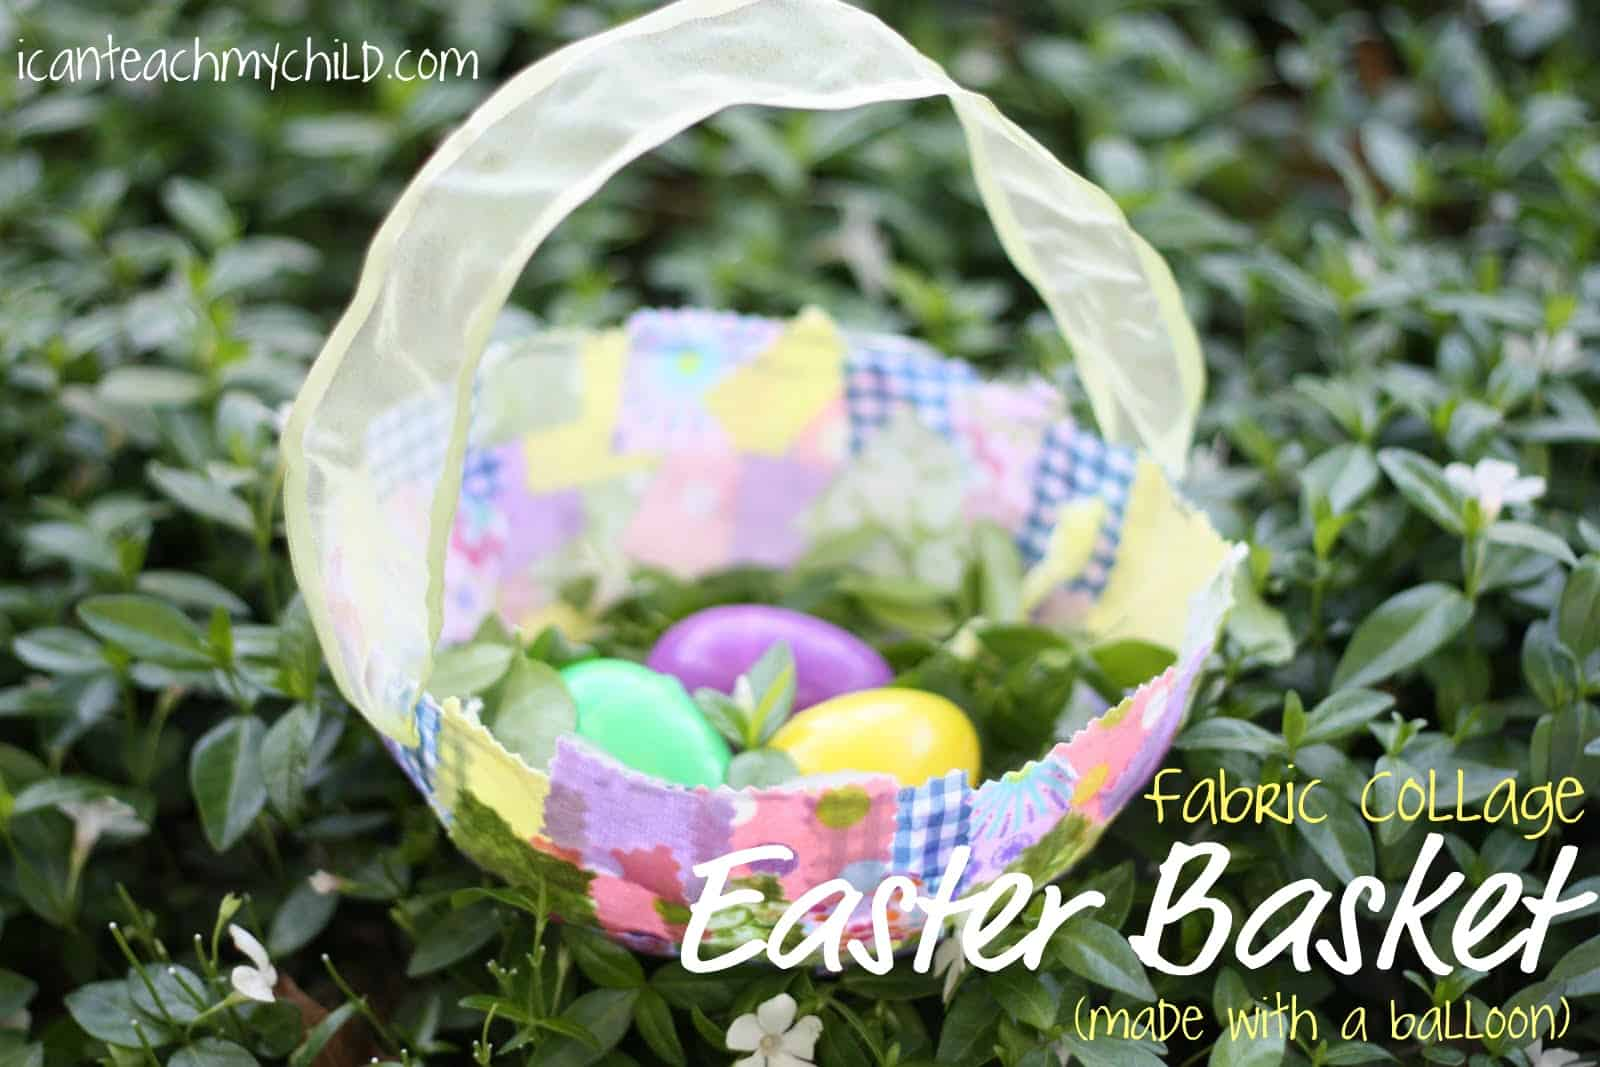 Fabric collage easter basket